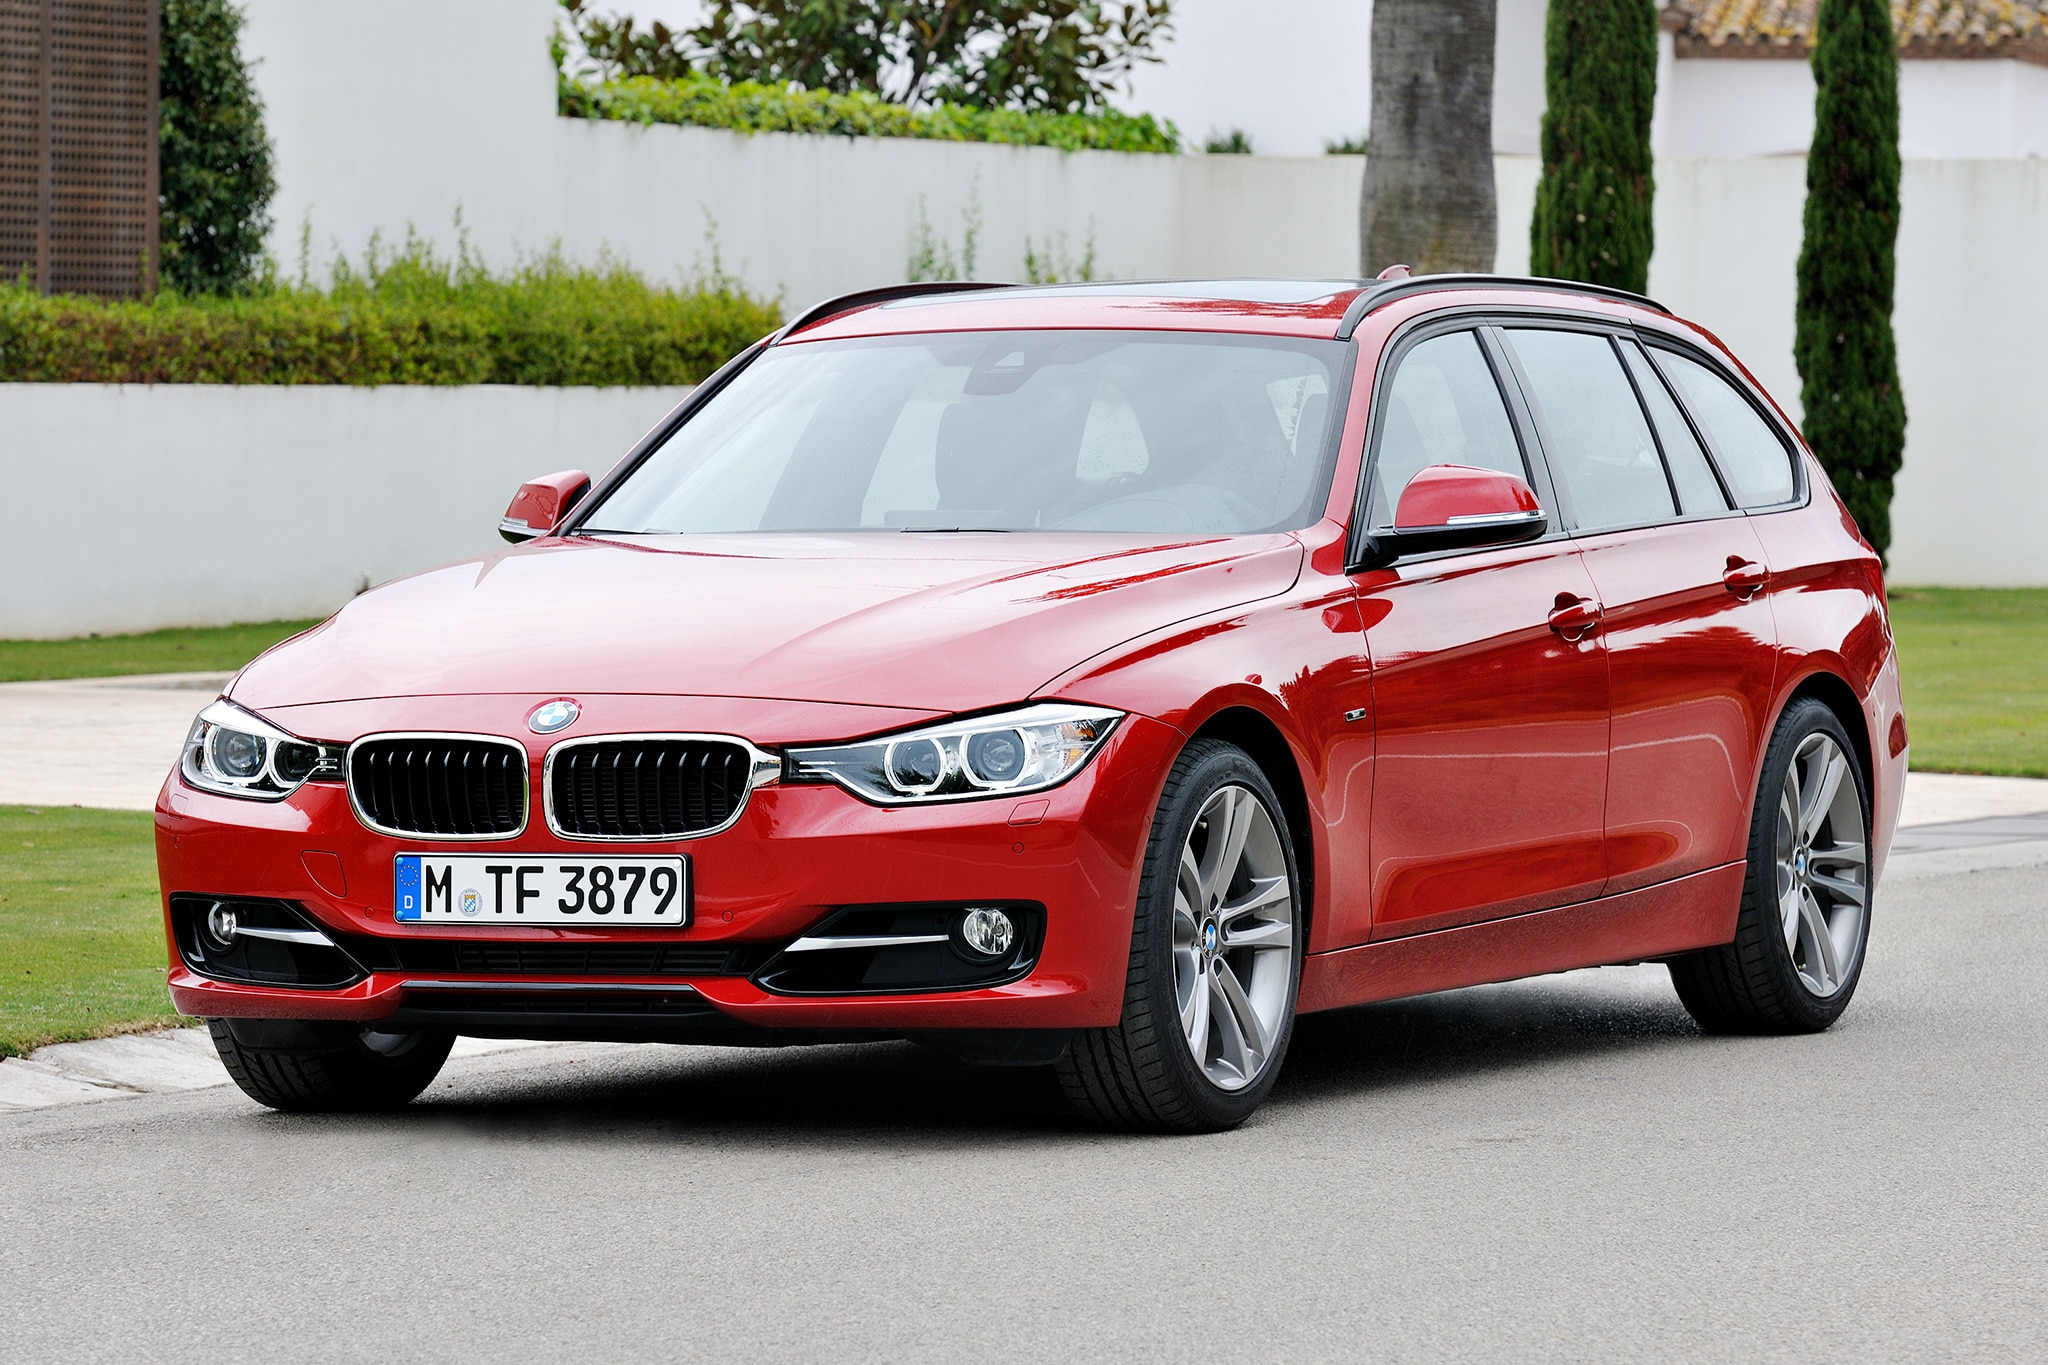 the quest for the perfect pre-owned bmw 3 series wagon